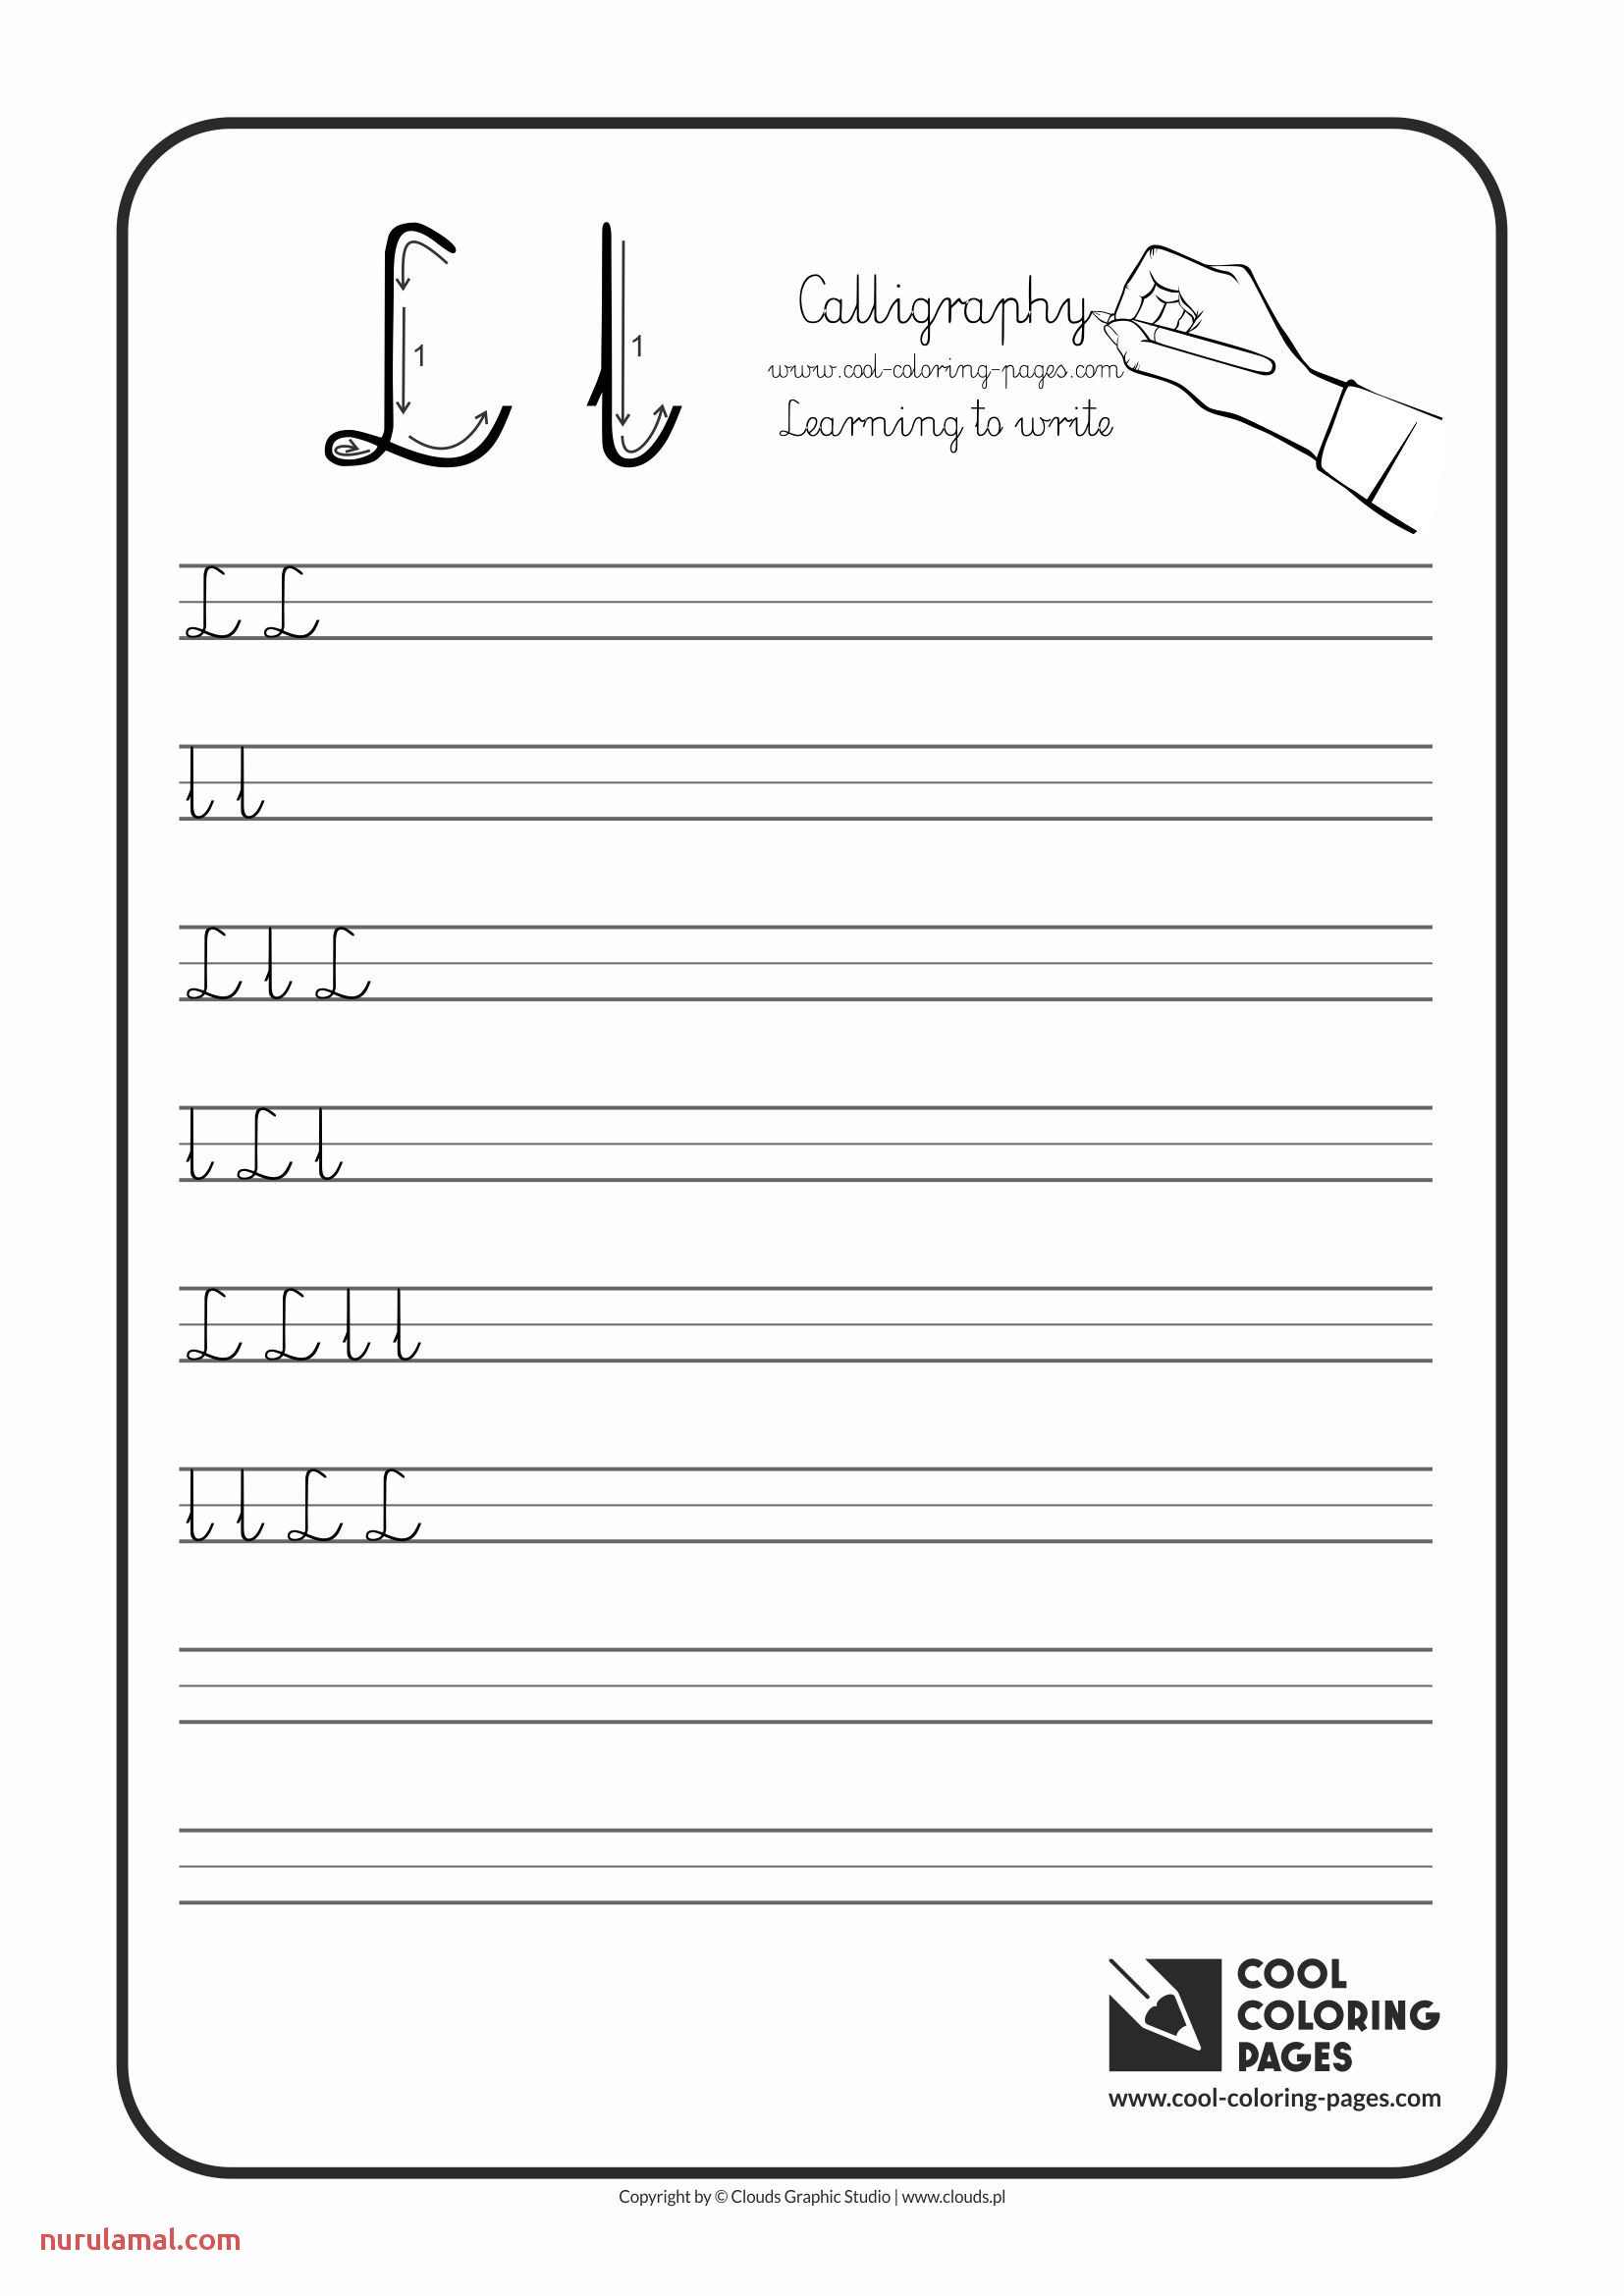 letter l worksheets for preschoolers free worksheet ideas cool coloring pages calligraphy